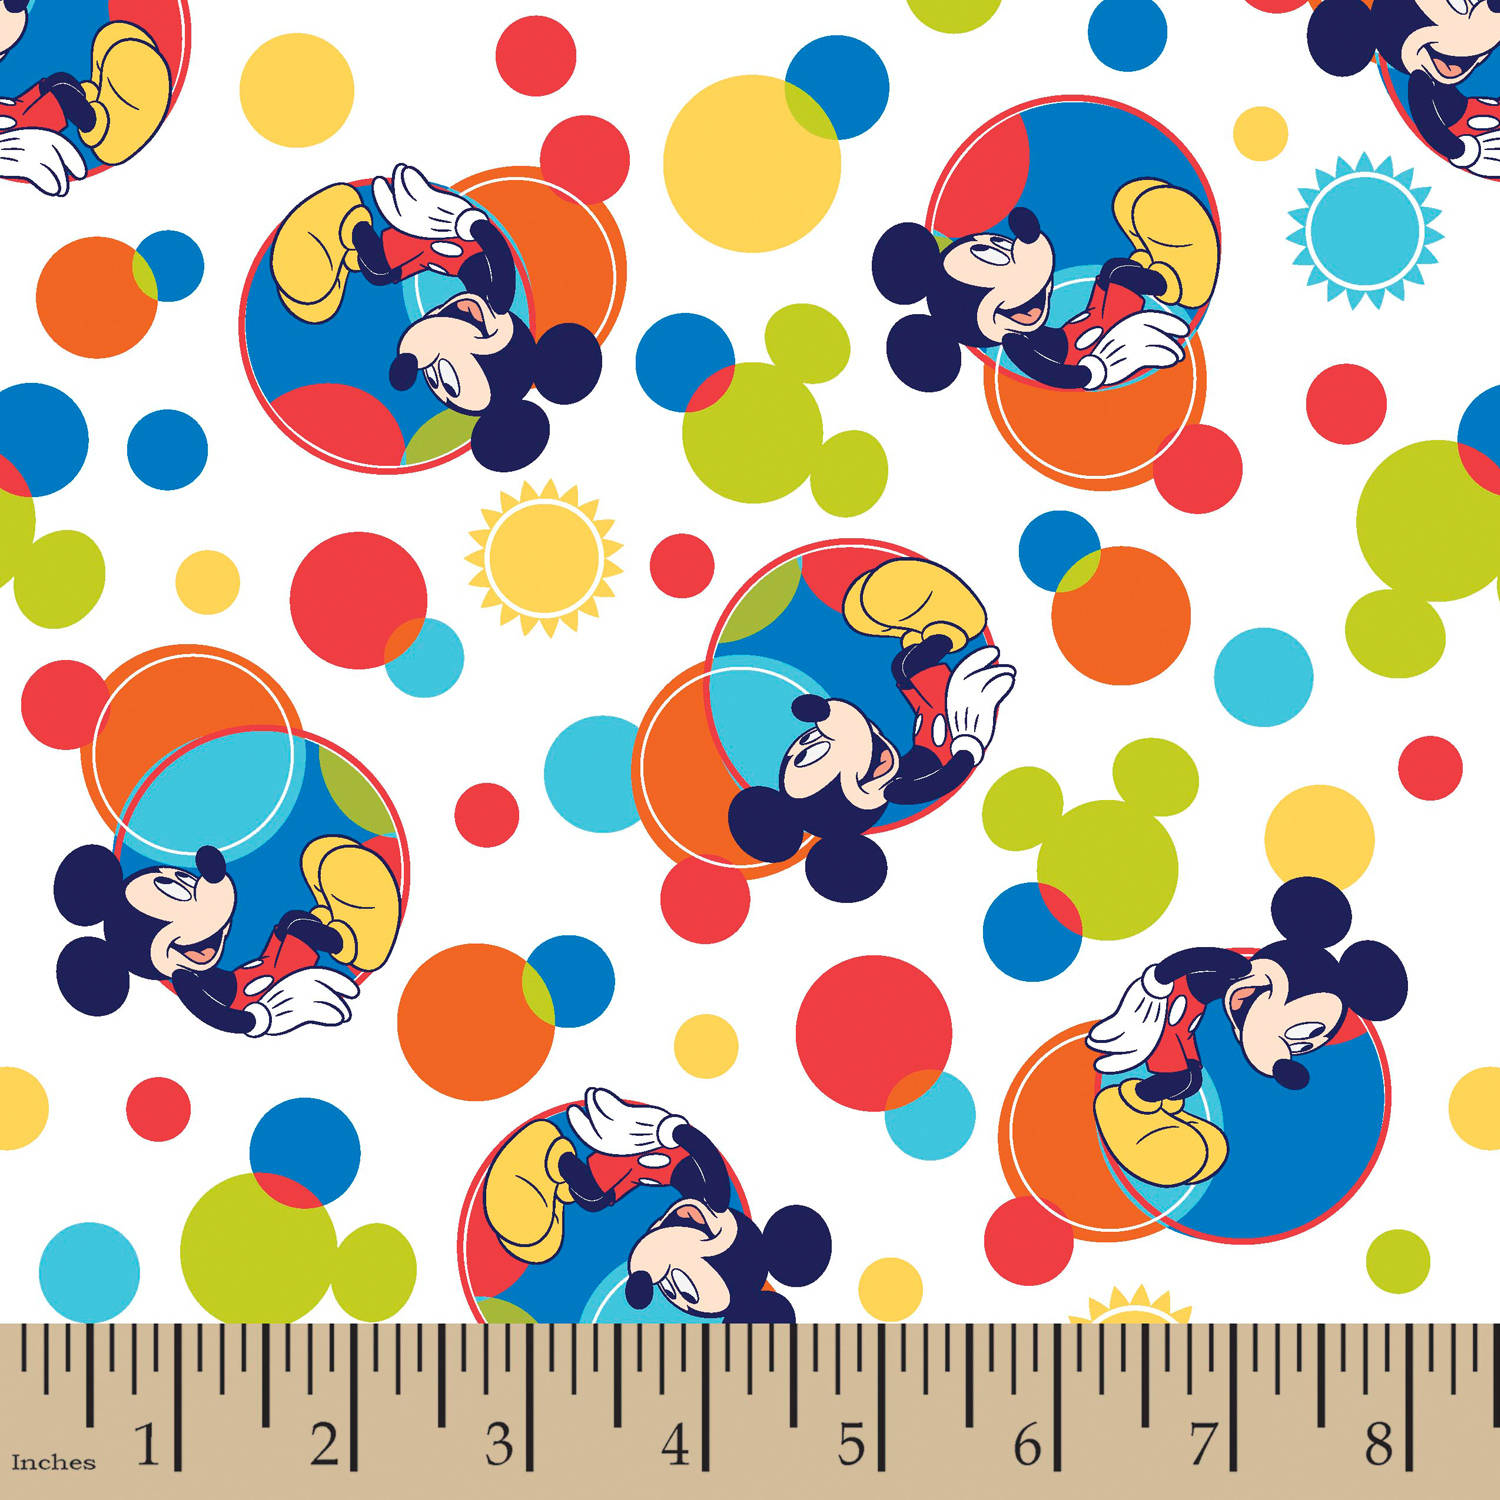 "Disney Mickey Spectrum, Flannel, Multi-Colored, 42/43"" Width, Fabric by the Yard"